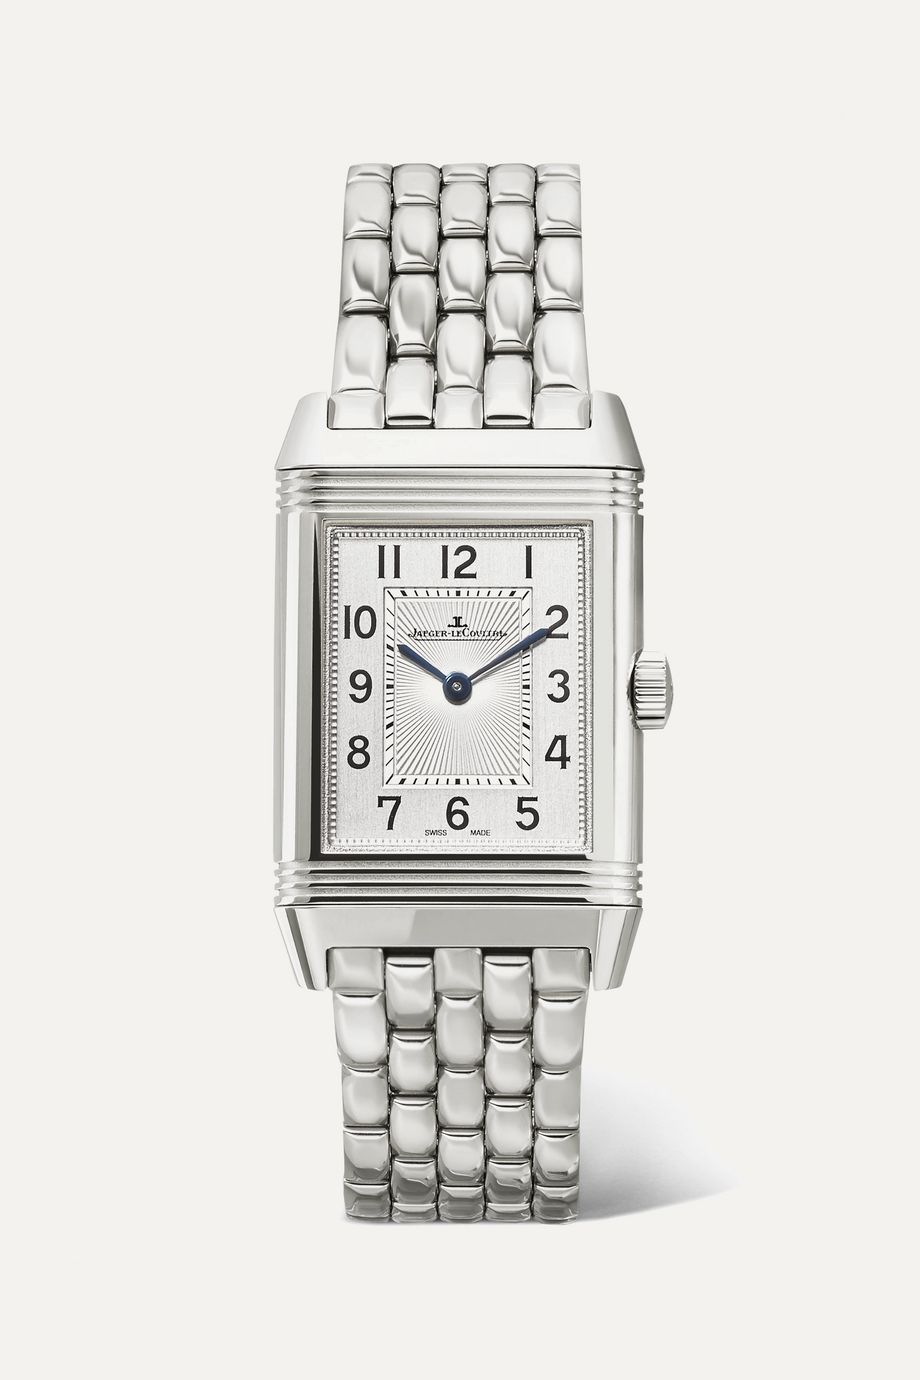 Jaeger-LeCoultre Reverso Classic 21mm small stainless steel watch